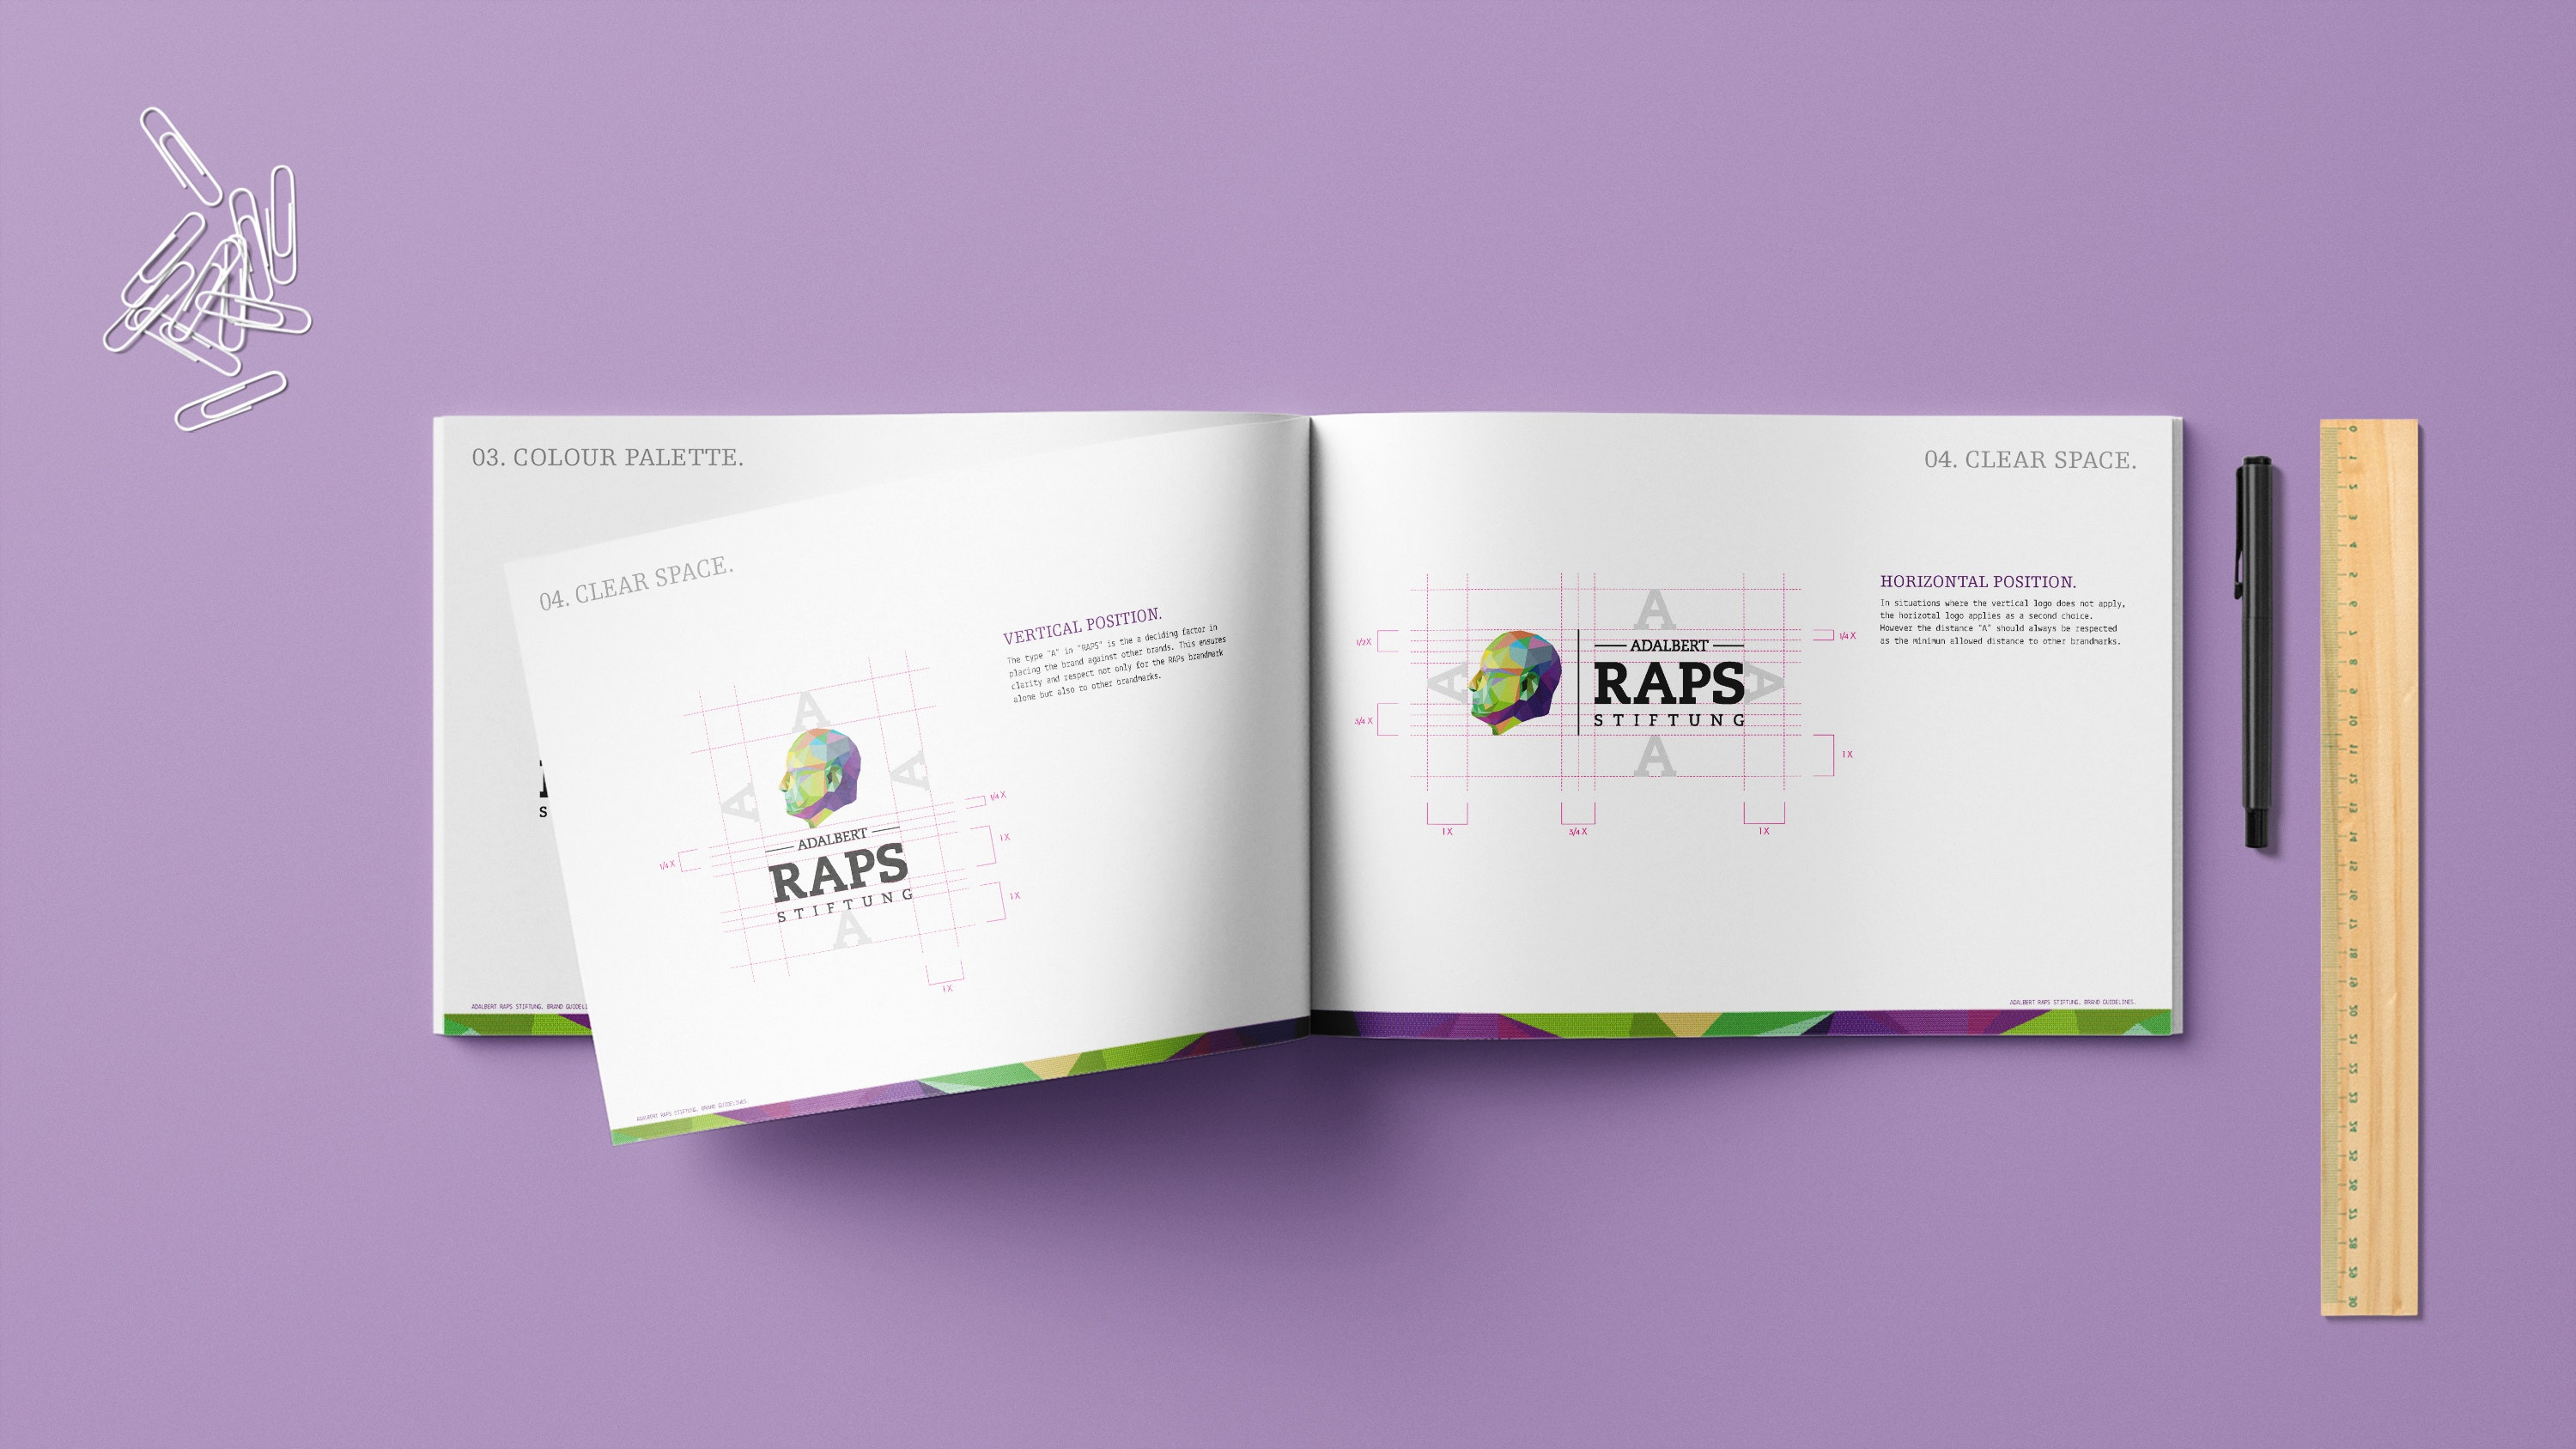 Titelbild Mockup Adalbert-Raps-Stiftung Corporate Design Manual